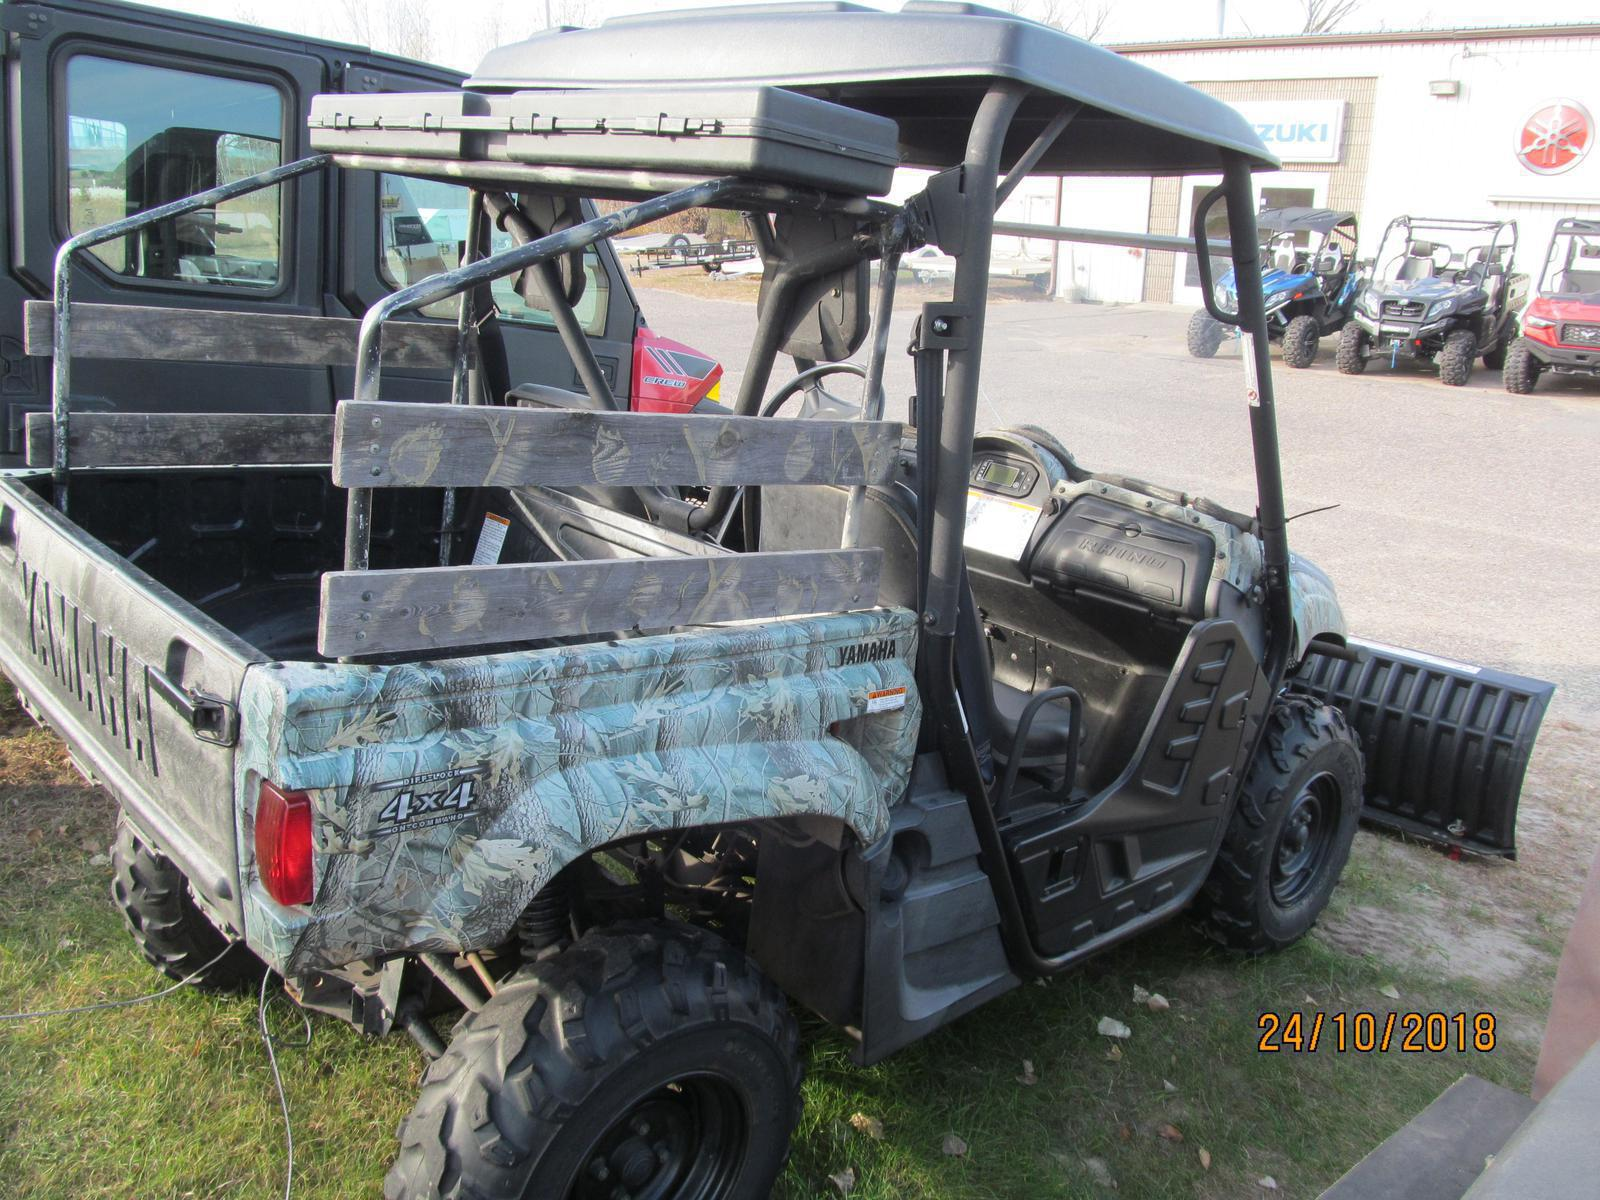 2007 Yamaha Rhino 660 4wd Hunter For Sale In Baxter Mn Brothers Fuel Filter Location Used Sxs 043